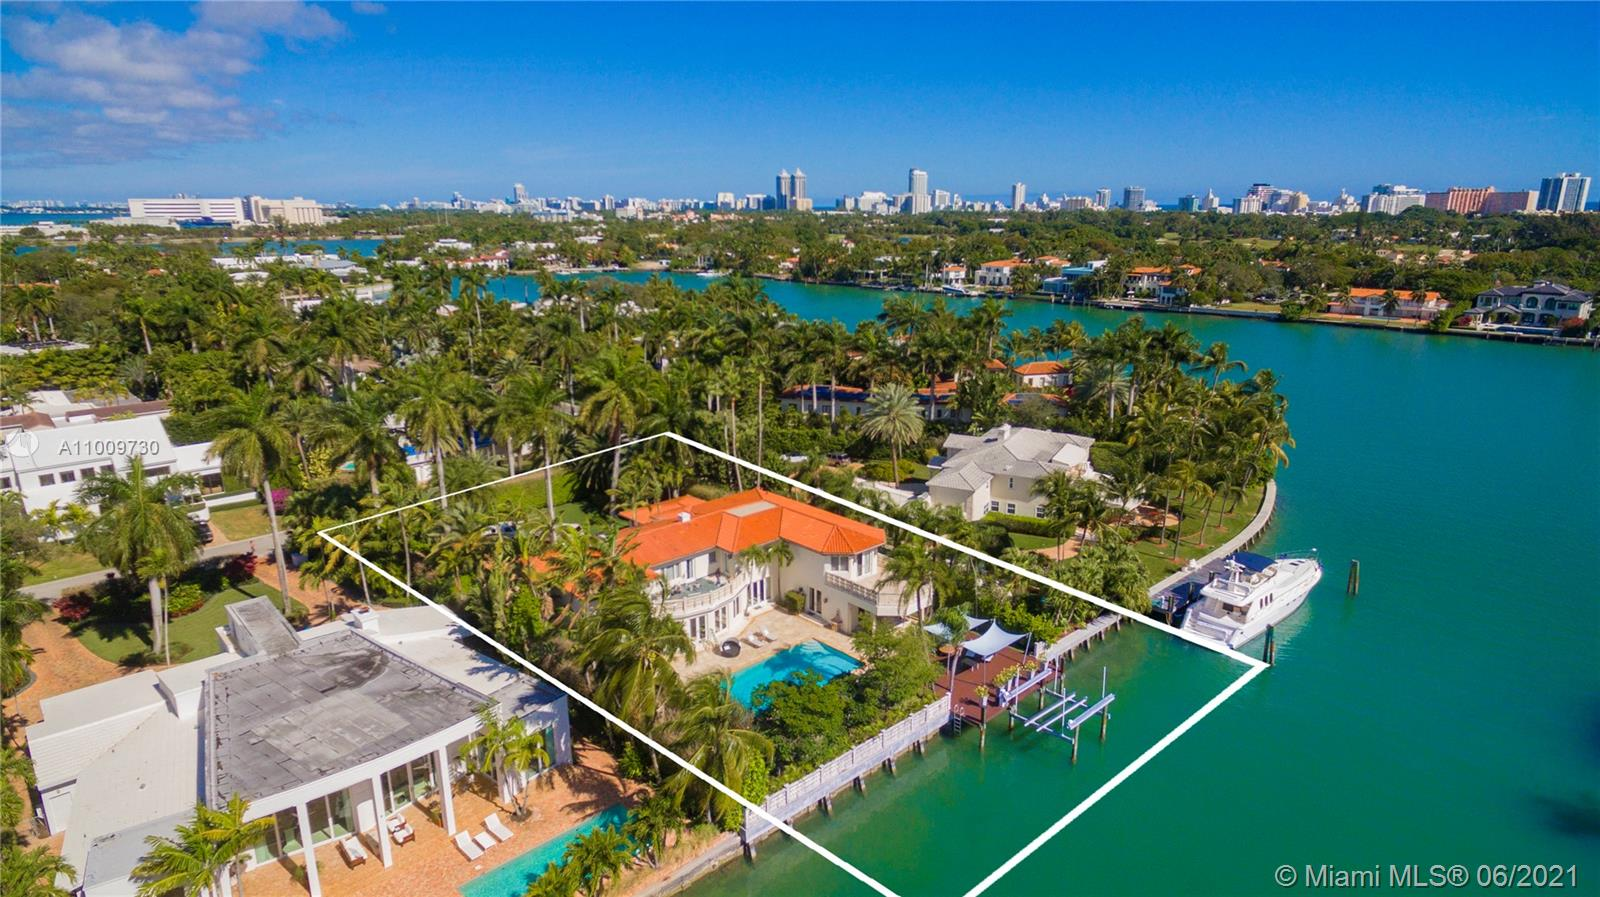 1410 W 25th St  For Sale A11009730, FL